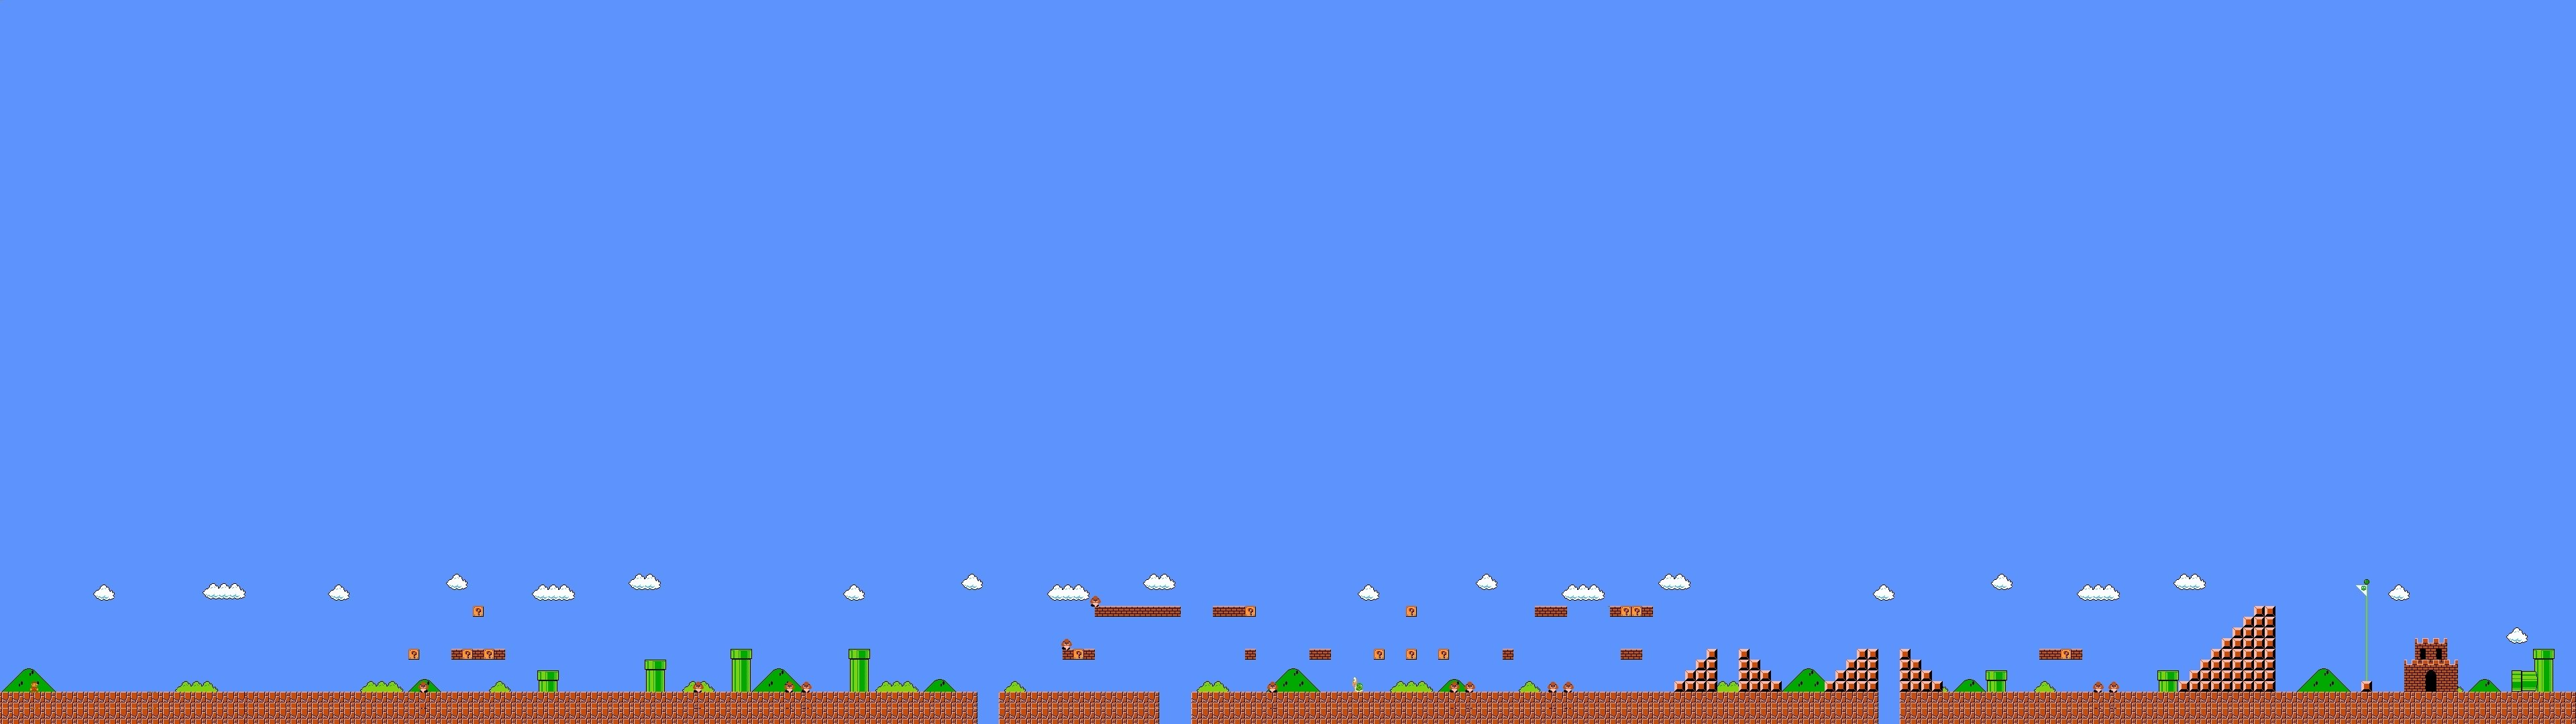 screen multi multiple videogame game jeu video mario bross wallpaper 3840x1080